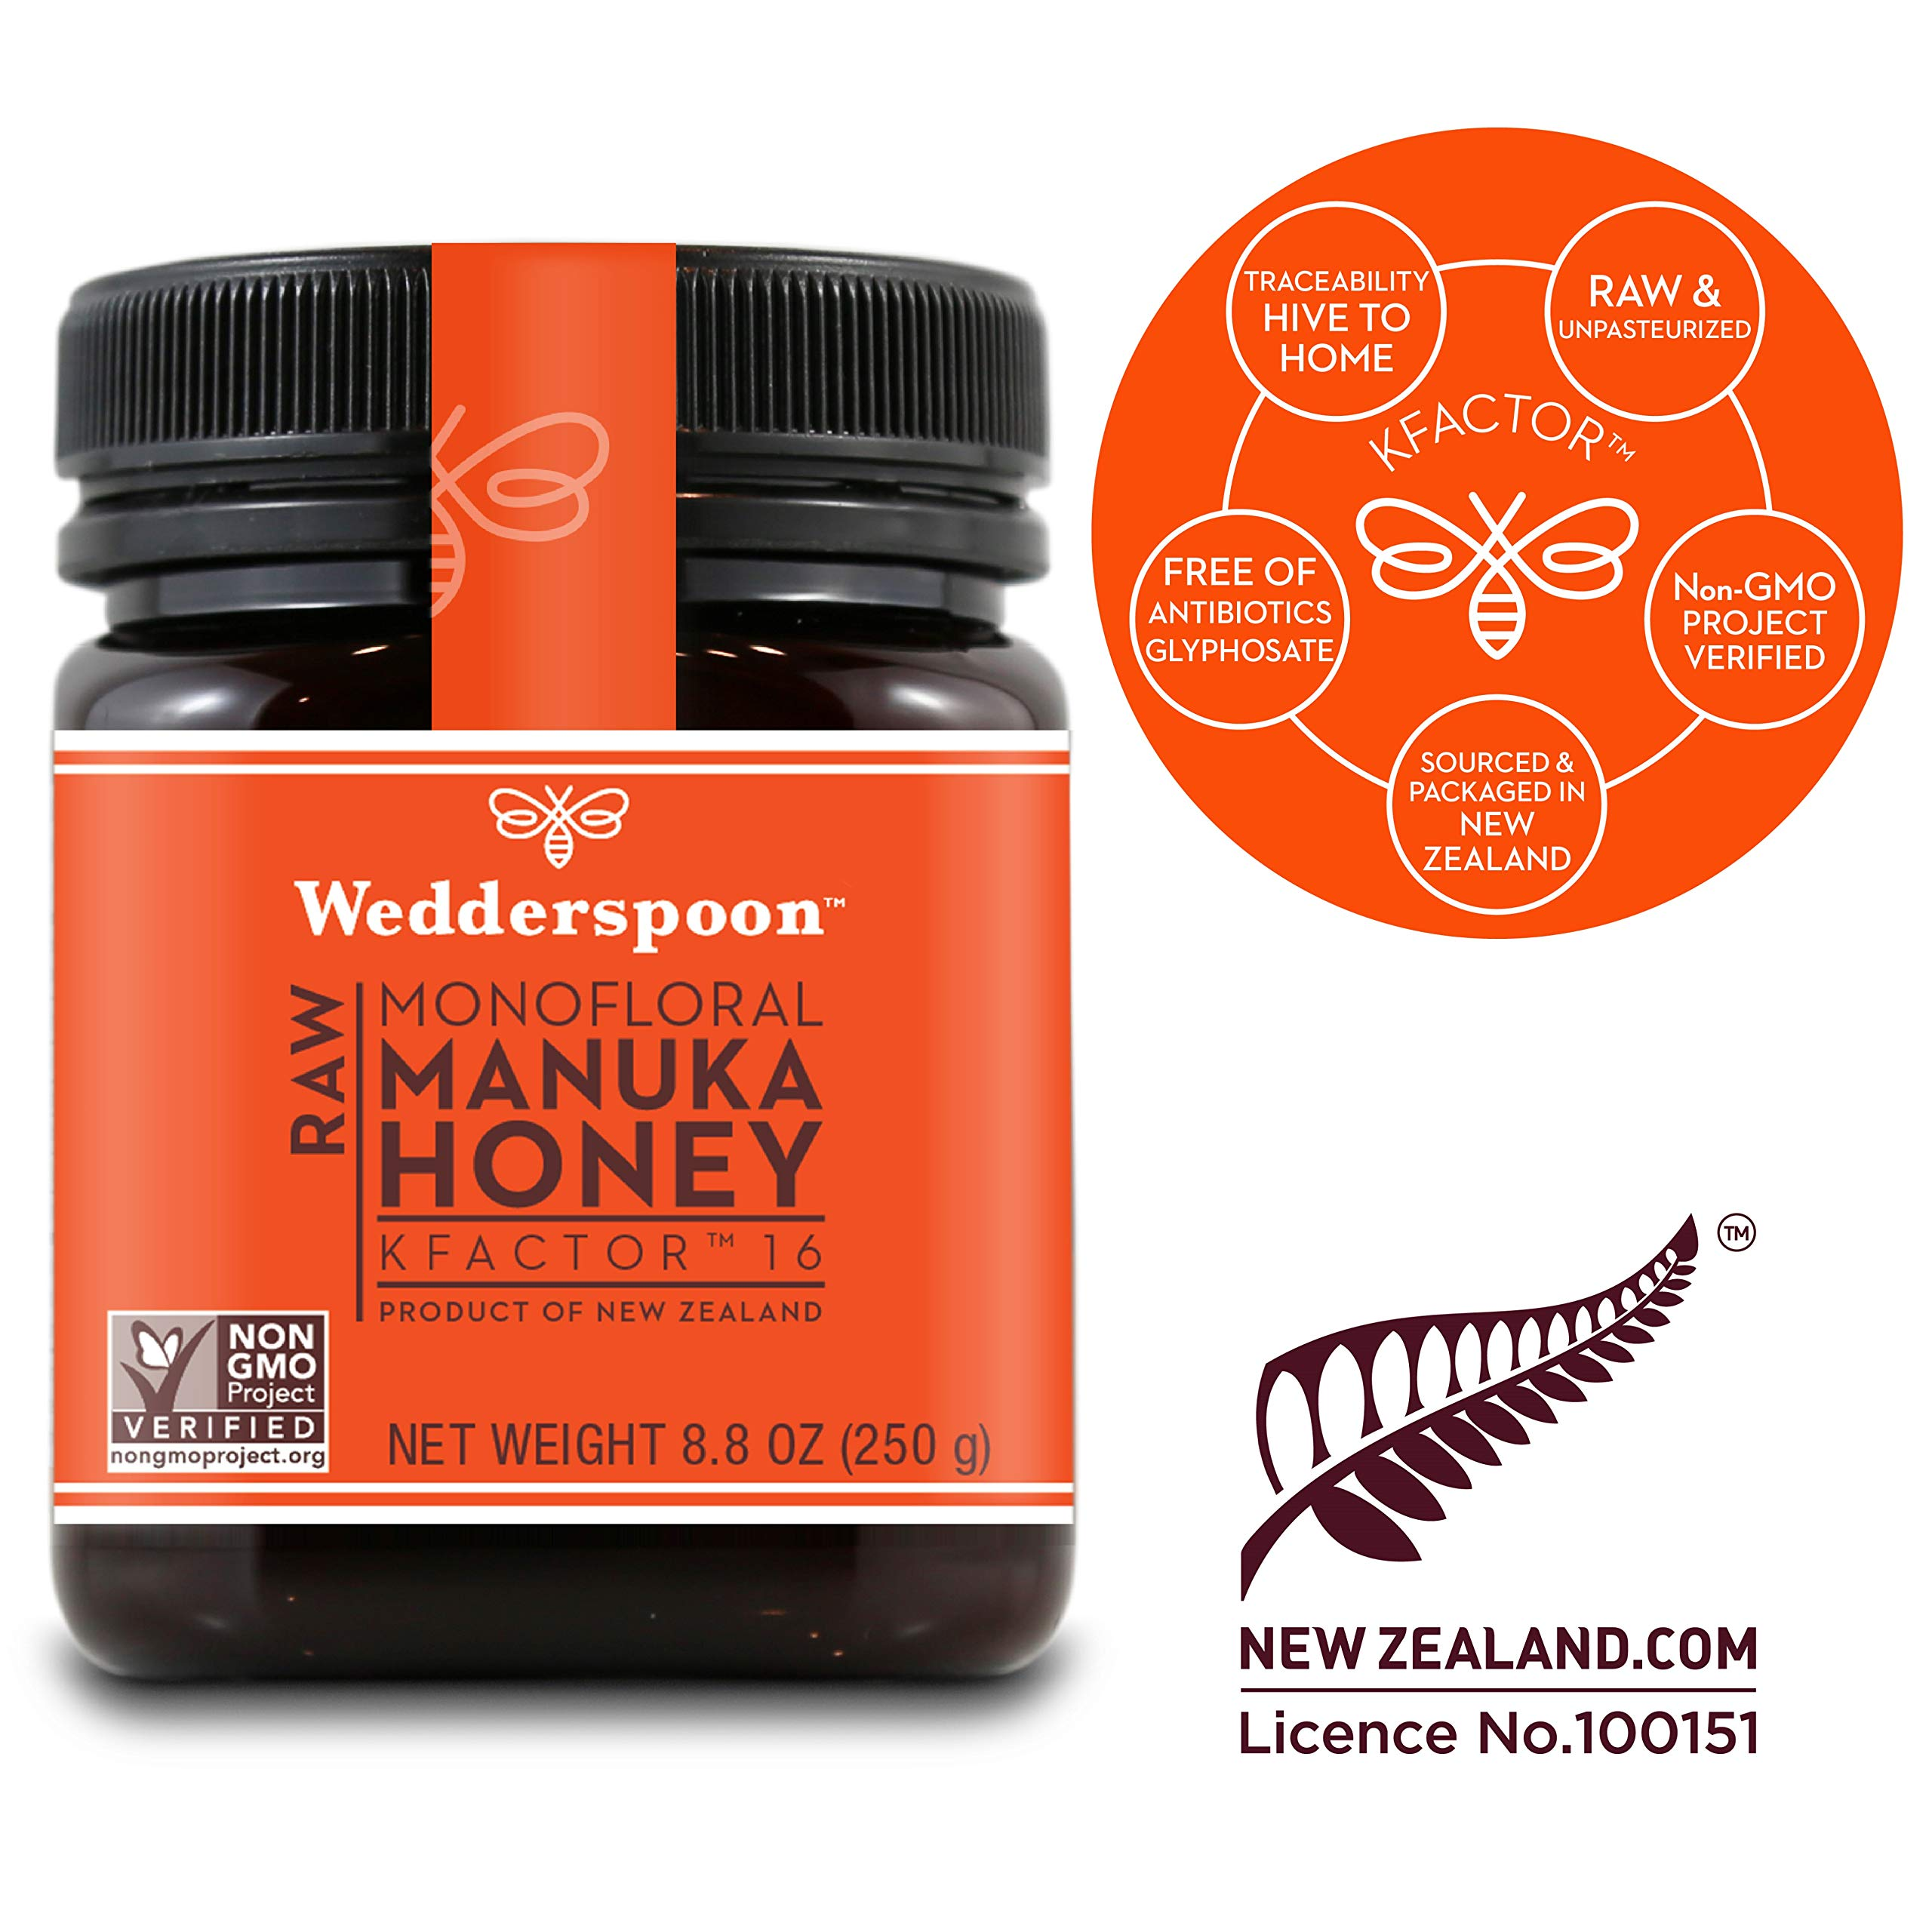 Wedderspoon Raw Premium Manuka Honey KFactor 16, 8.8 Oz, Unpasteurized, Genuine New Zealand Honey, Multi-Functional, Non-GMO Superfood by Wedderspoon (Image #1)